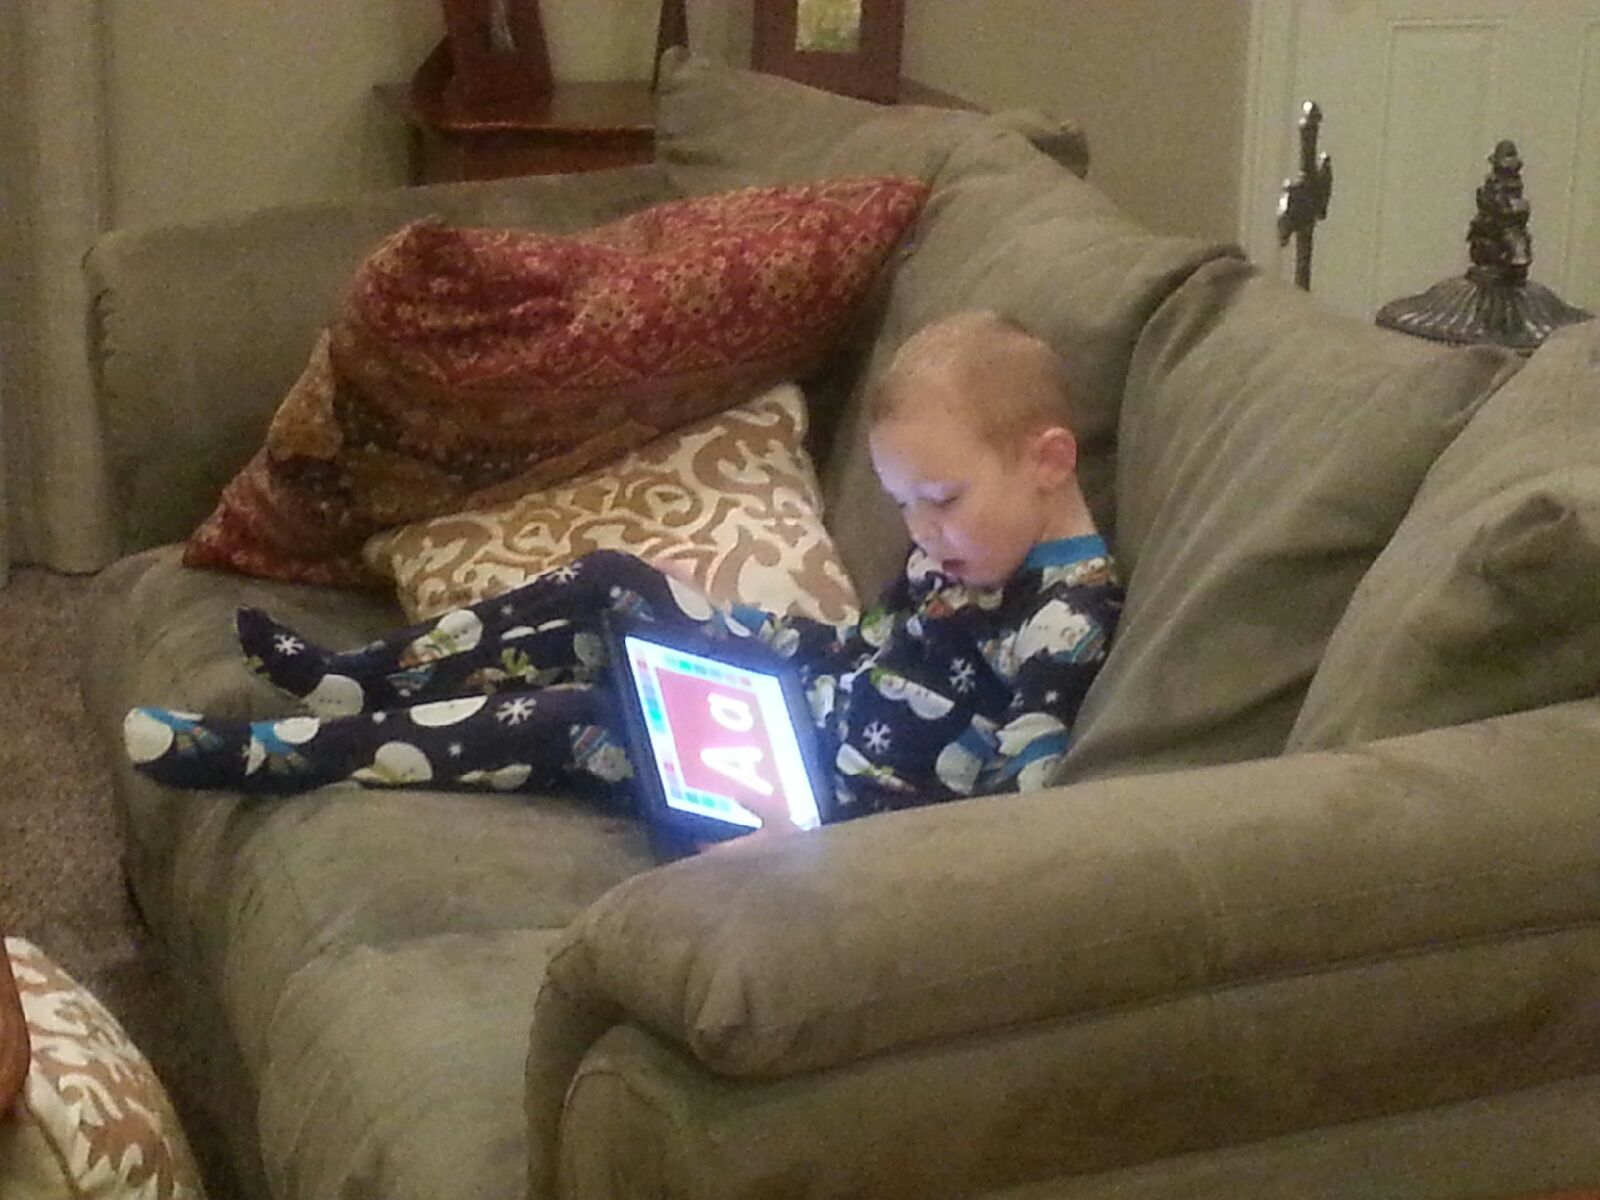 Ezra loves to play on his I PAD...something that he was terrified to even touch this time last year! Little victories are never little!